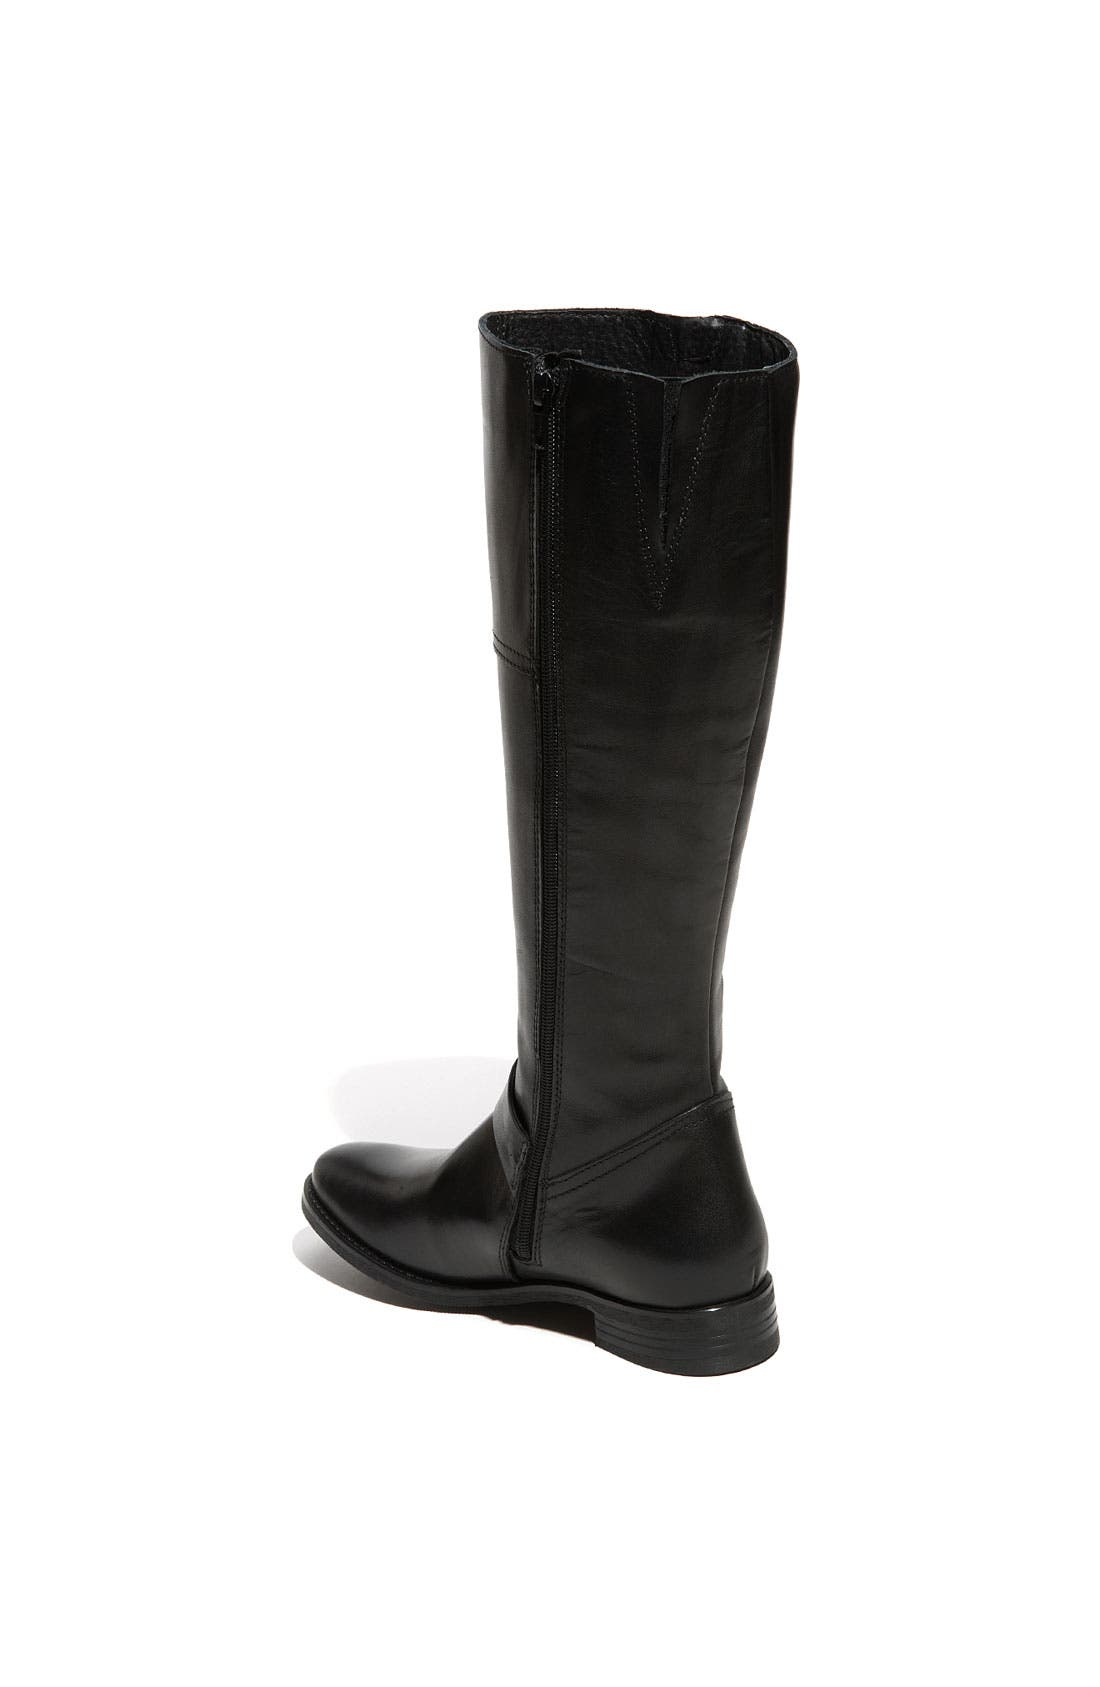 'Roediger Riding' Boot,                             Alternate thumbnail 2, color,                             002